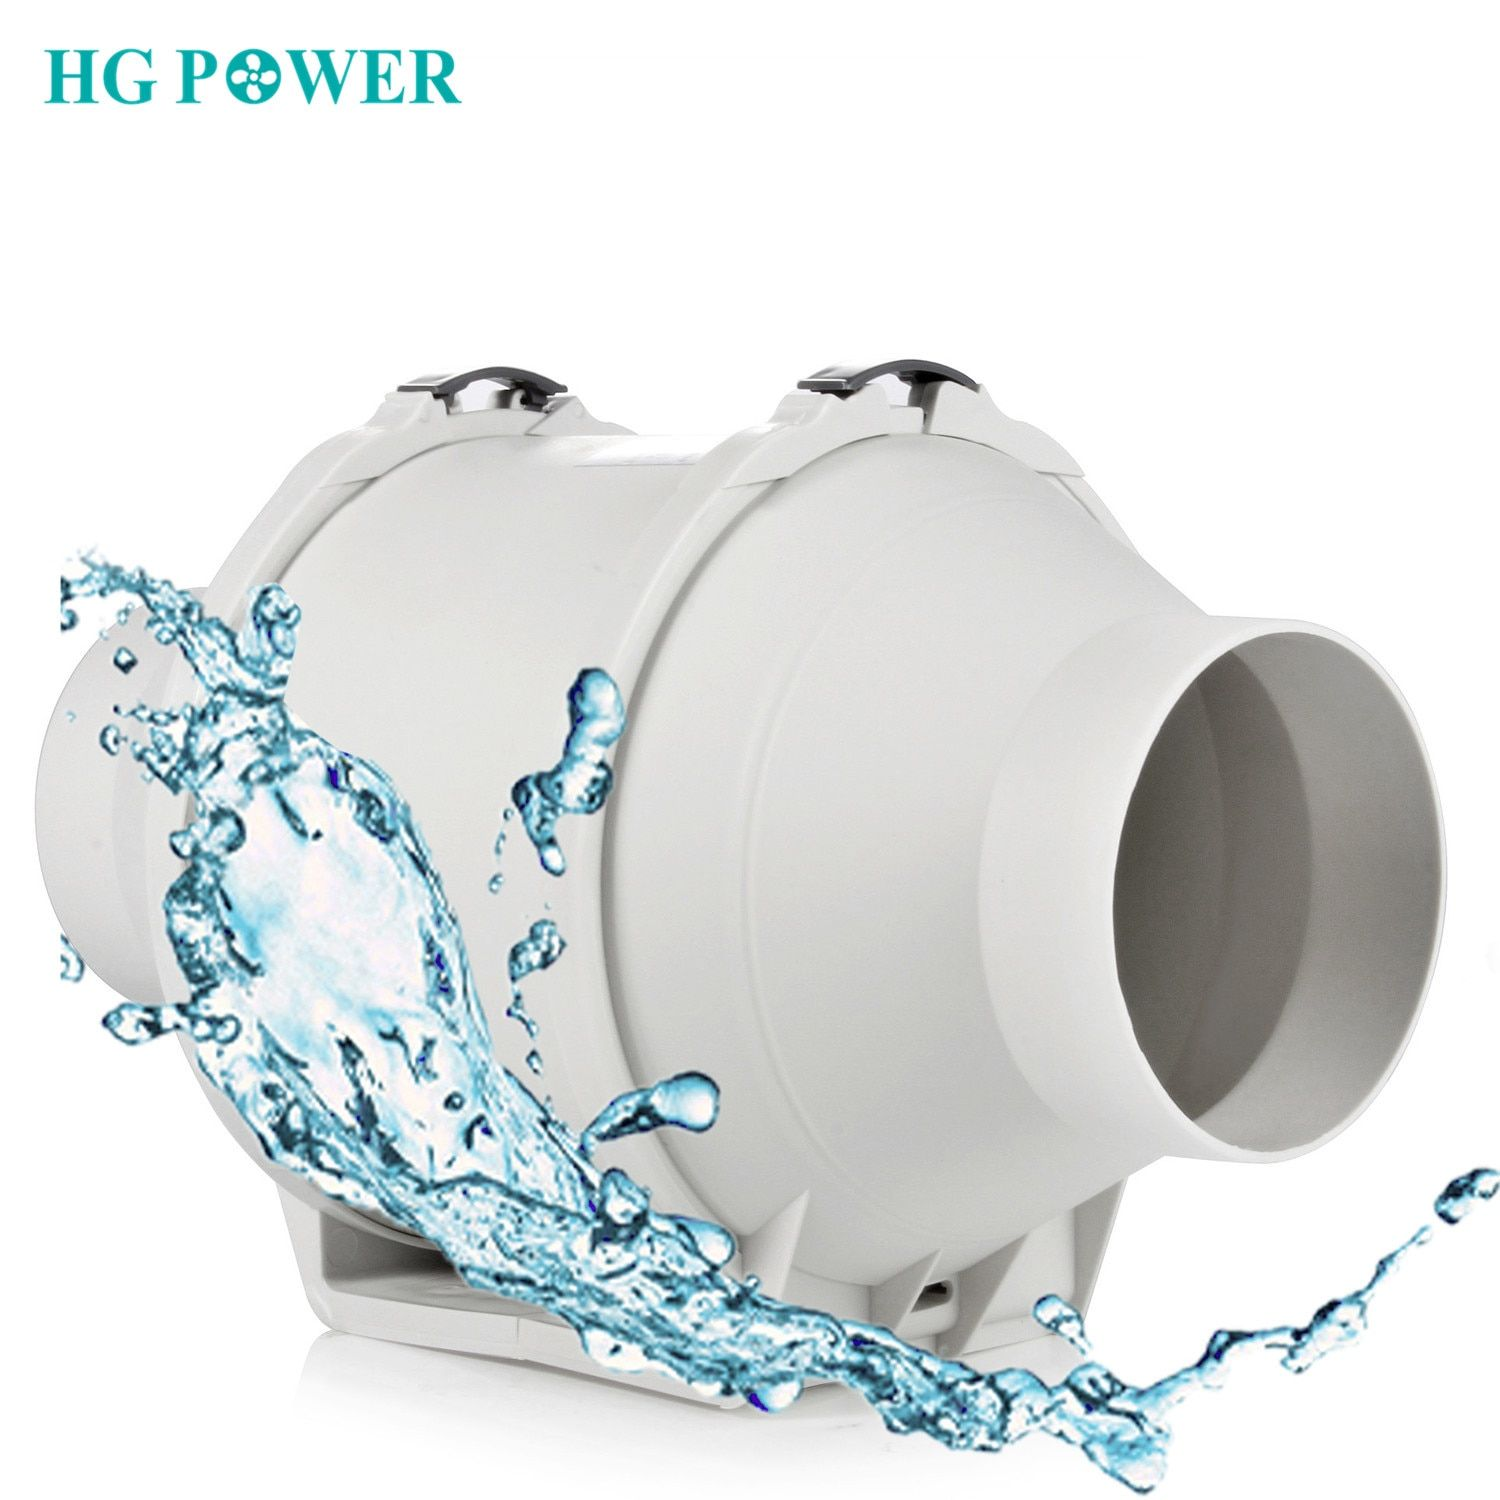 4 5 220v High Efficiency Inline Duct Fan Ventilation System Exhaust Extractor Fan Hydroponic Air Blower Booster For Bathroom With Images Extractor Fans Ventilation System